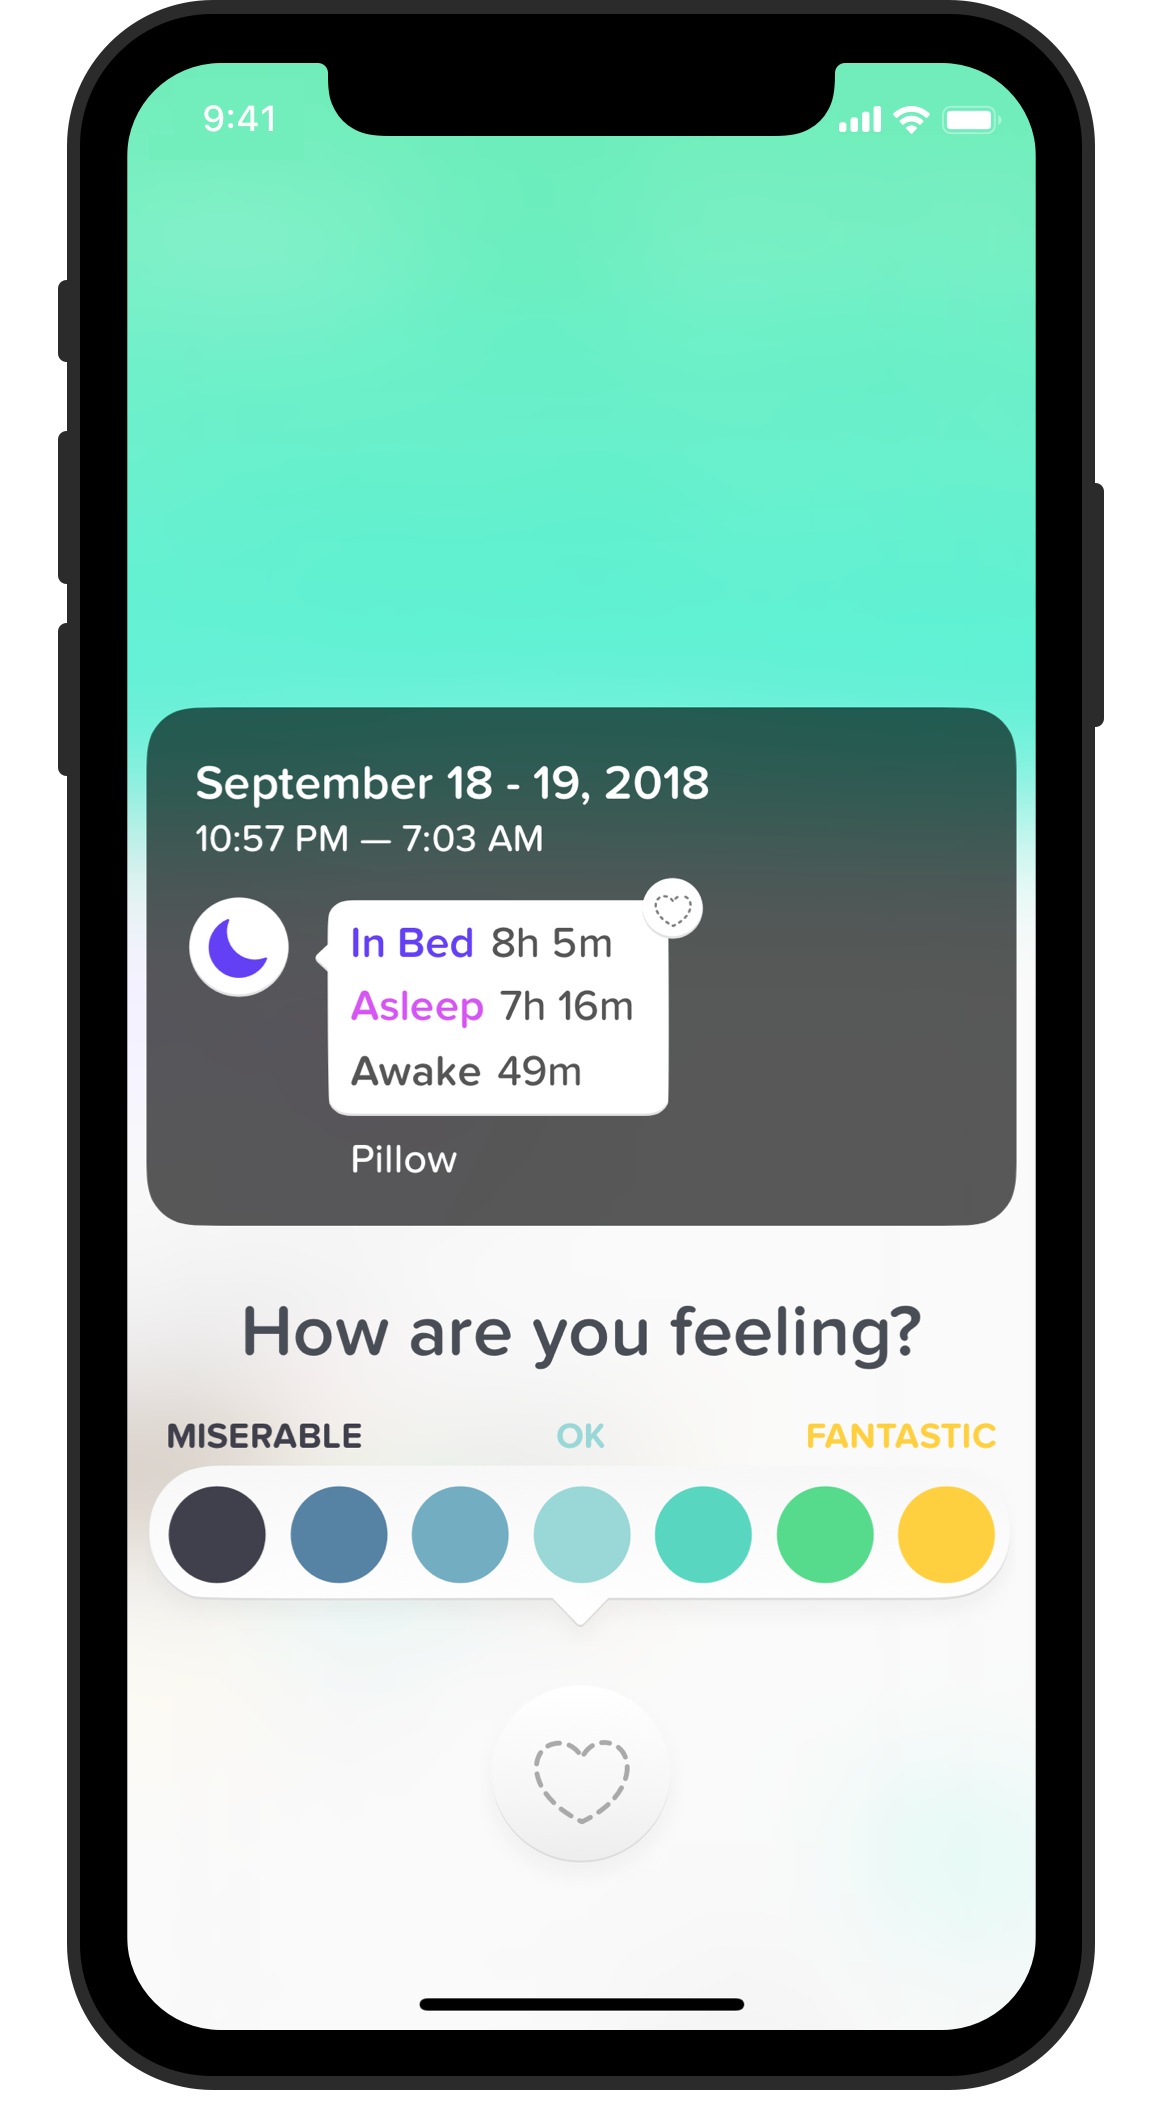 Wellness can attach a mood to your sleep entries from other apps.